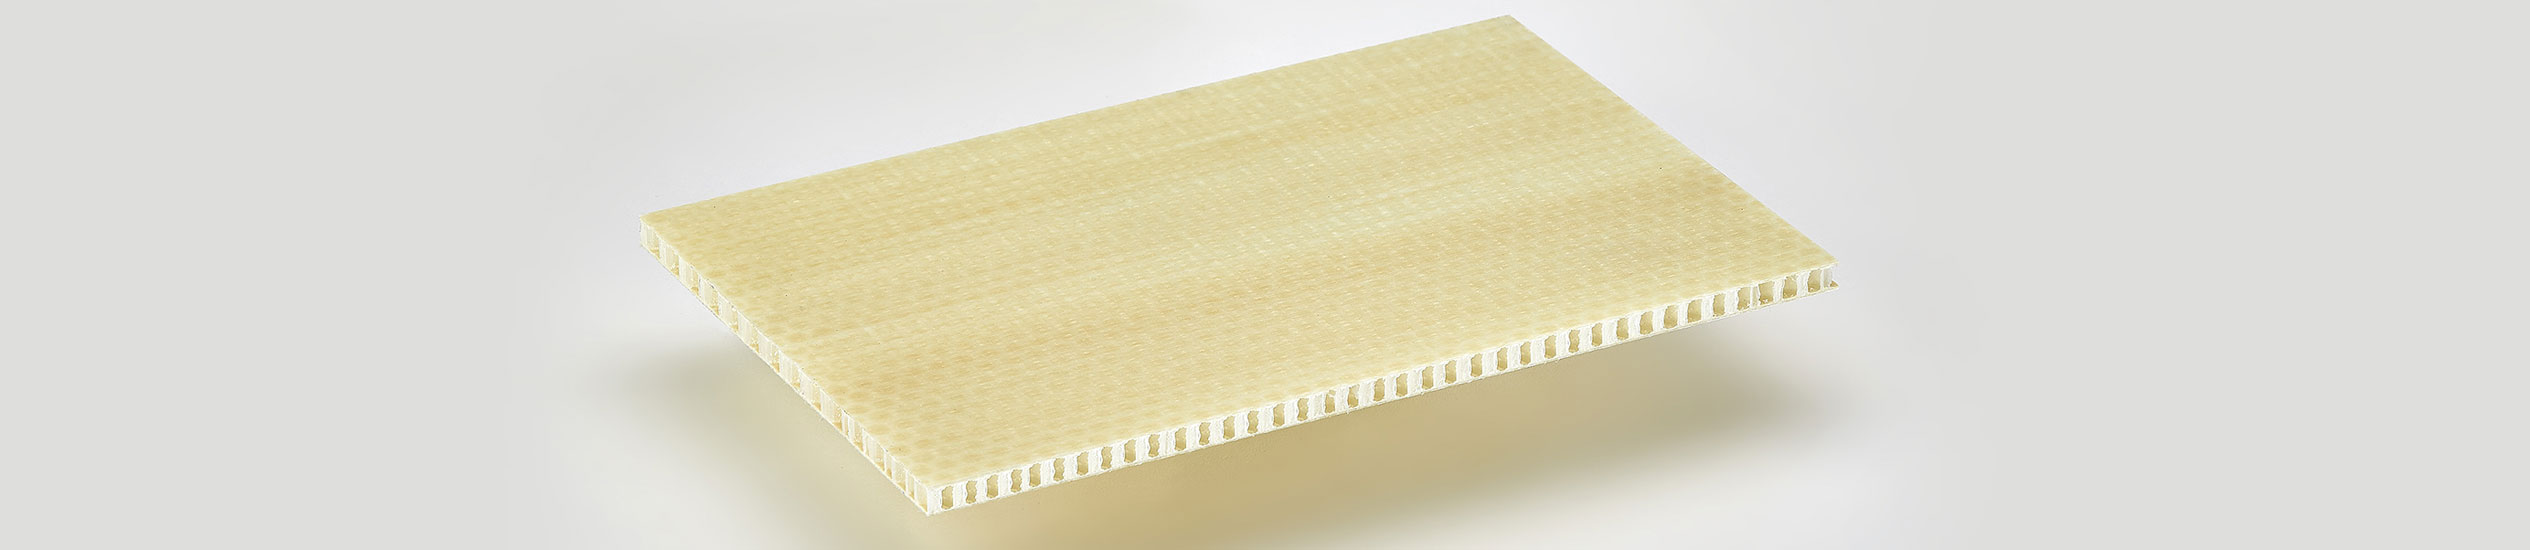 POLISTEP  is a lightweight sandwich panel with a core in polypropylene with glass fiber reinforced with epoxy resin.